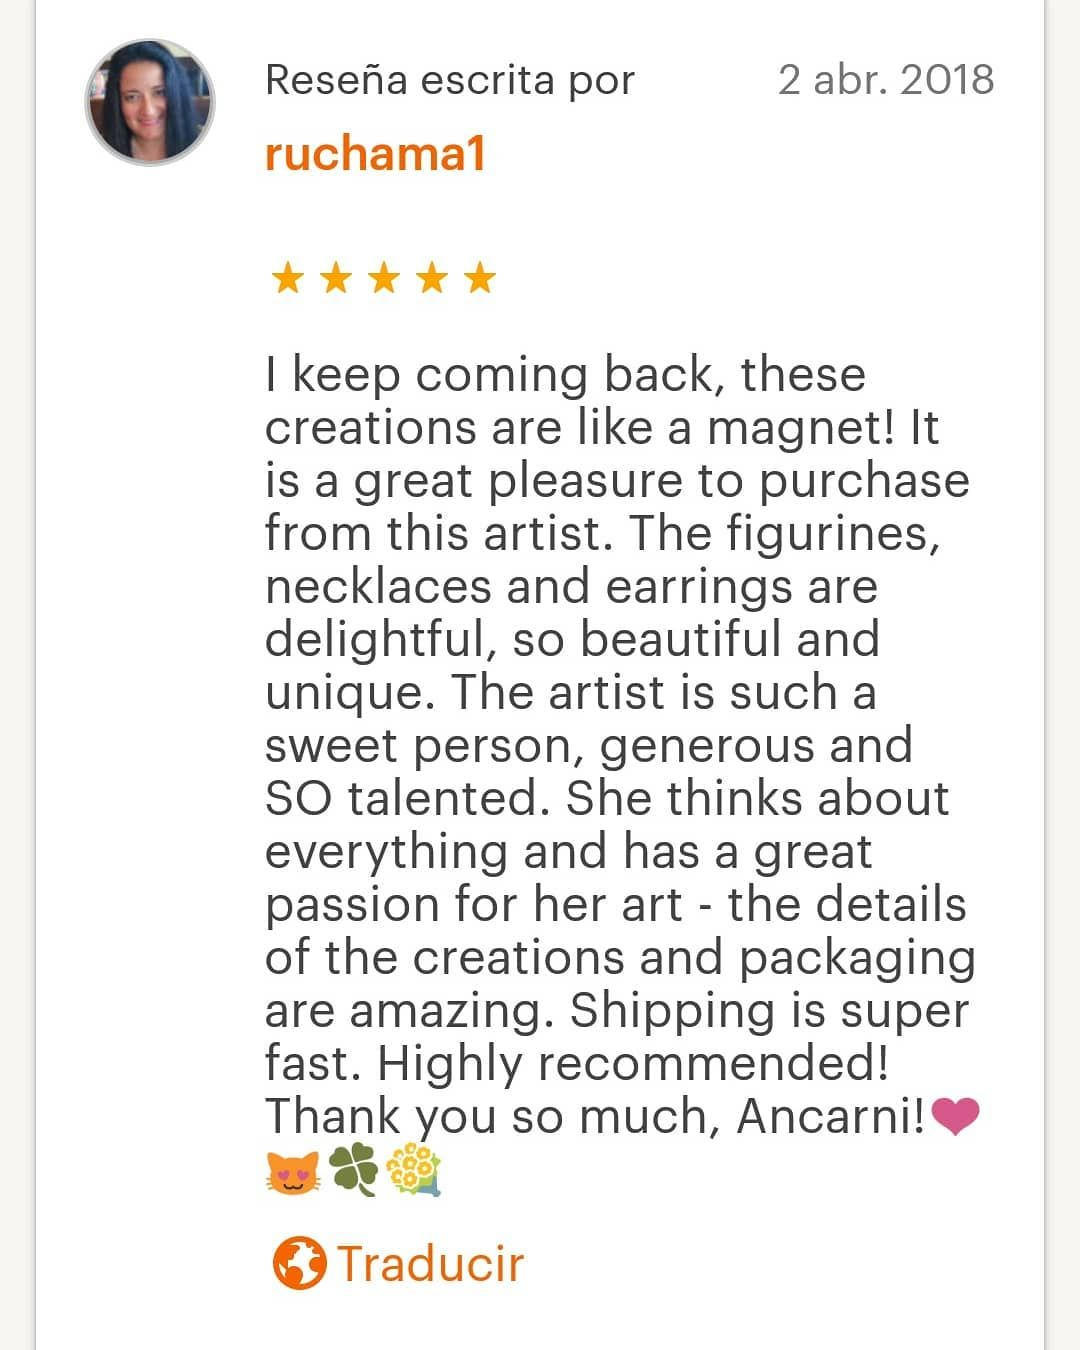 Beautiful Review Thank You Ruchama Do You Love Cats Take A Look To My Etsy Shop Gizpins Et Cat Lover Gifts Cat Artwork Cat Decor